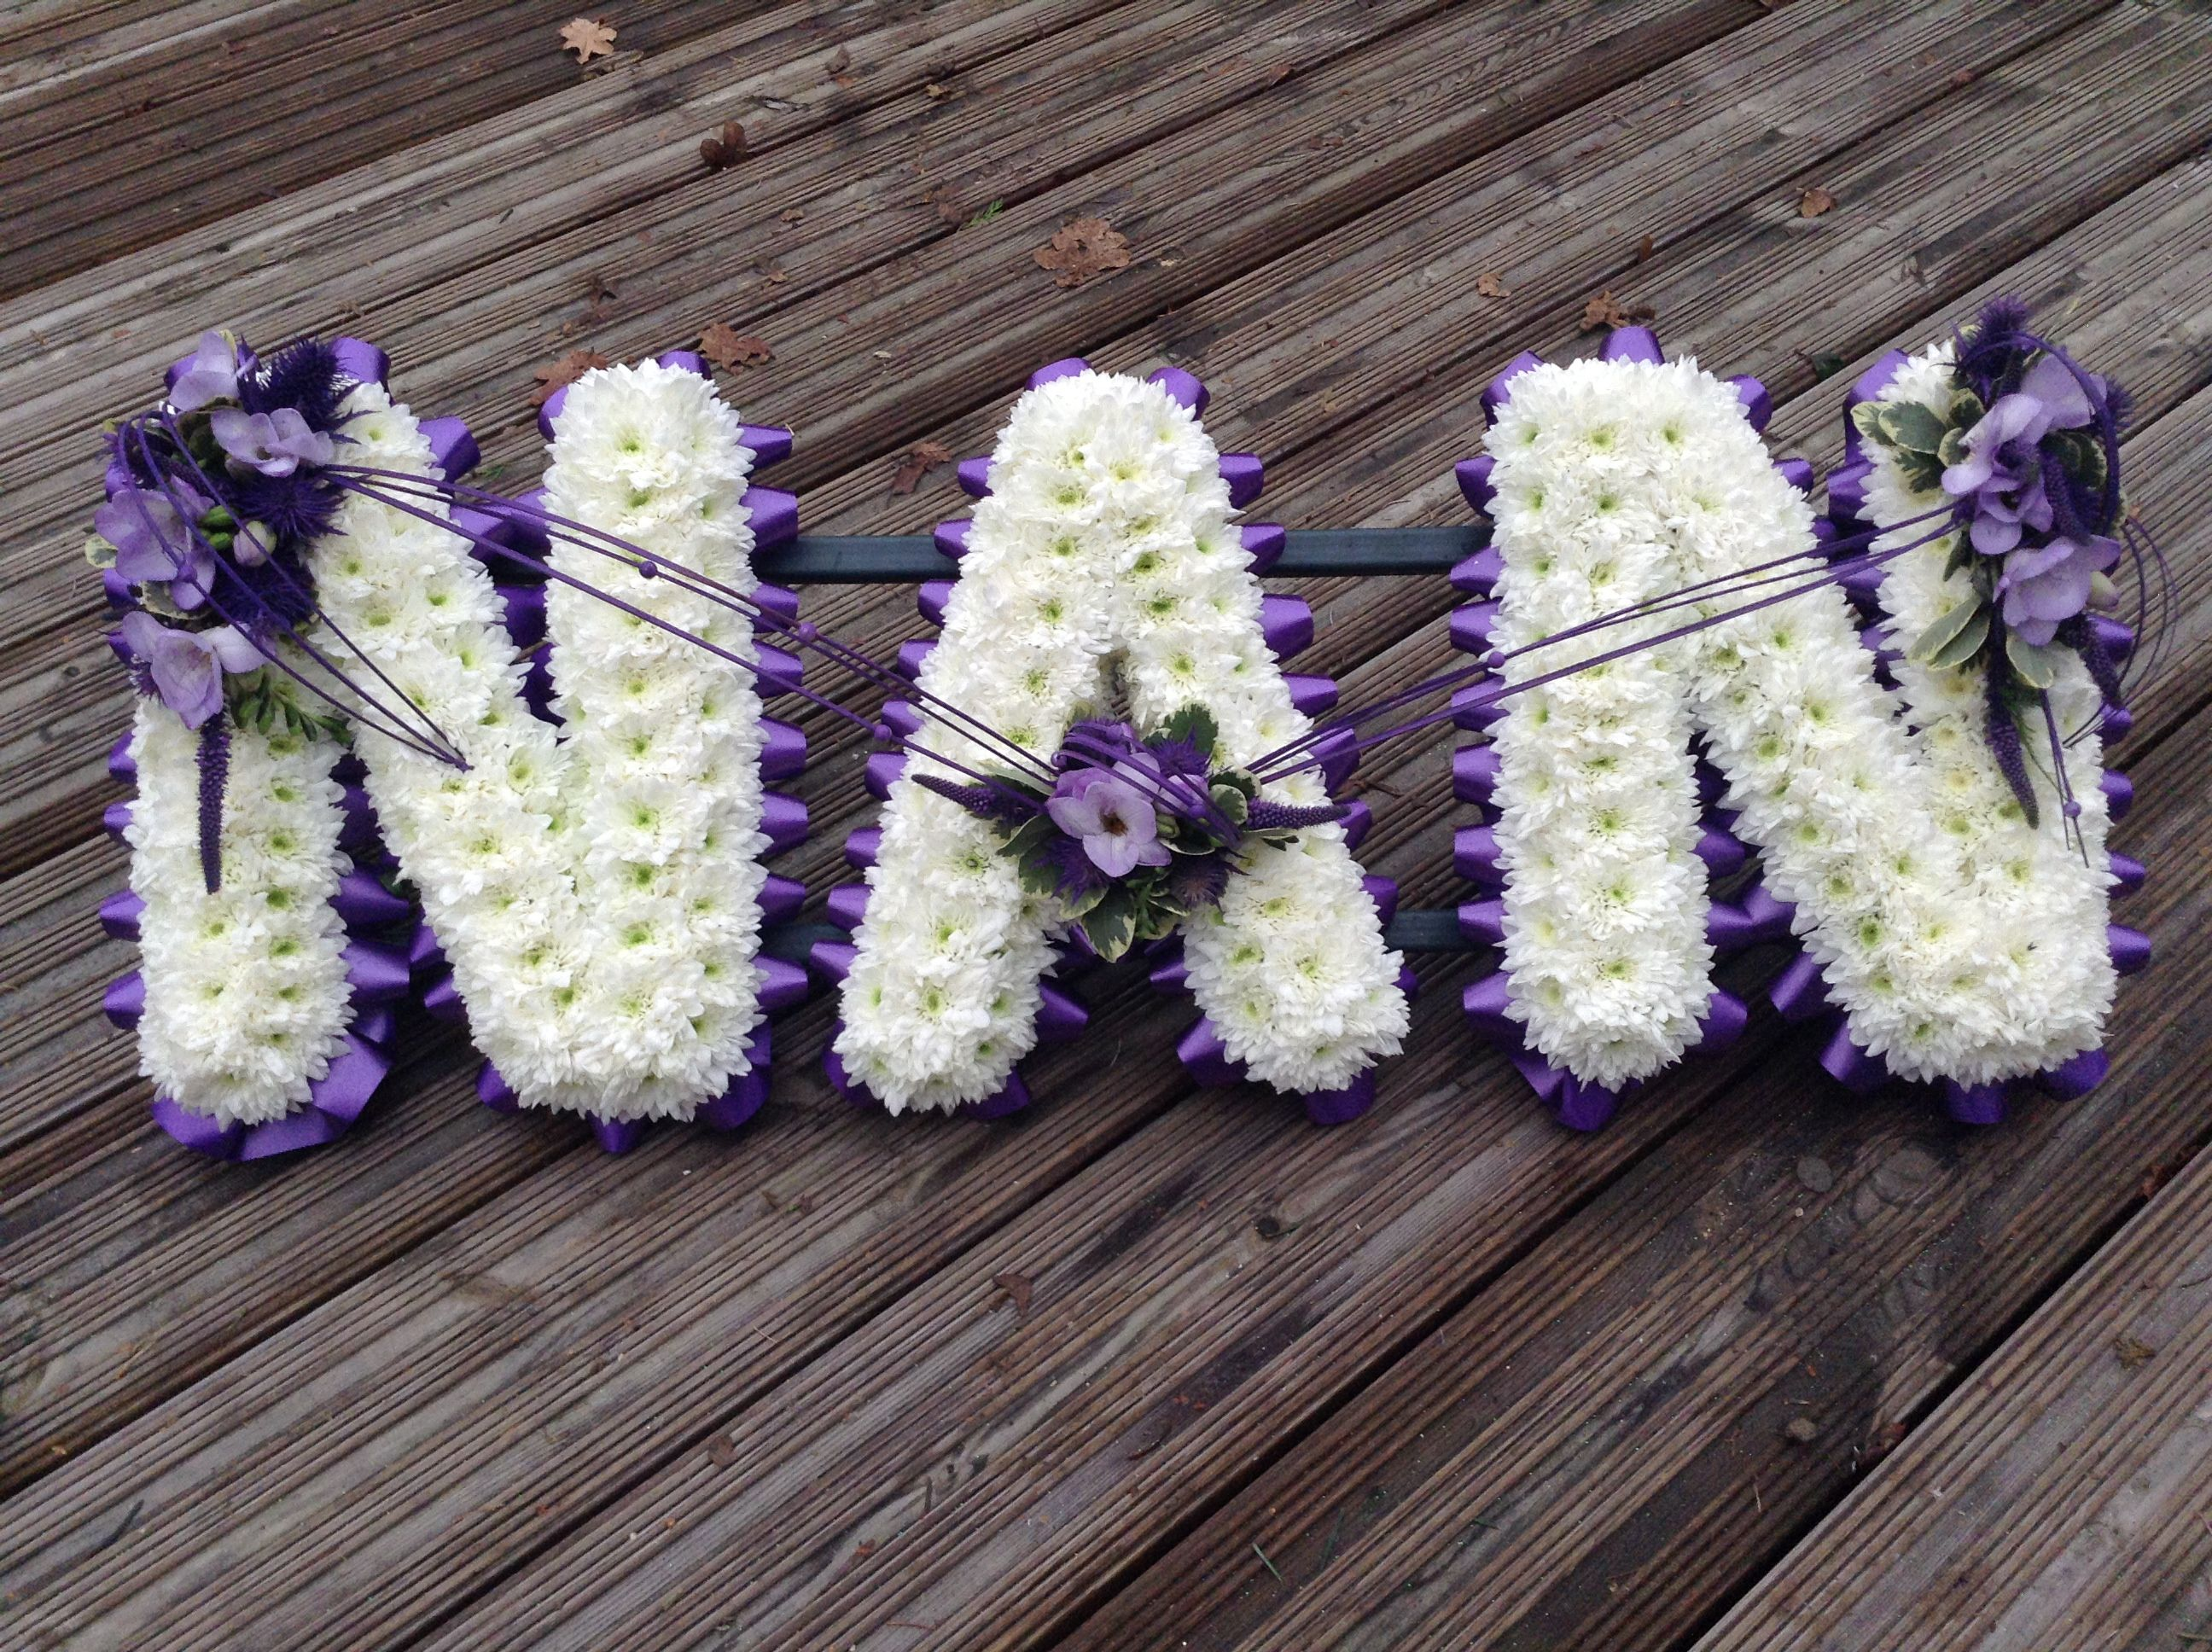 Funeral flowers nan funeral flower letter tribute purple and lilac funeral flowers nan funeral flower letter tribute purple and lilac thefloralartstudio izmirmasajfo Images